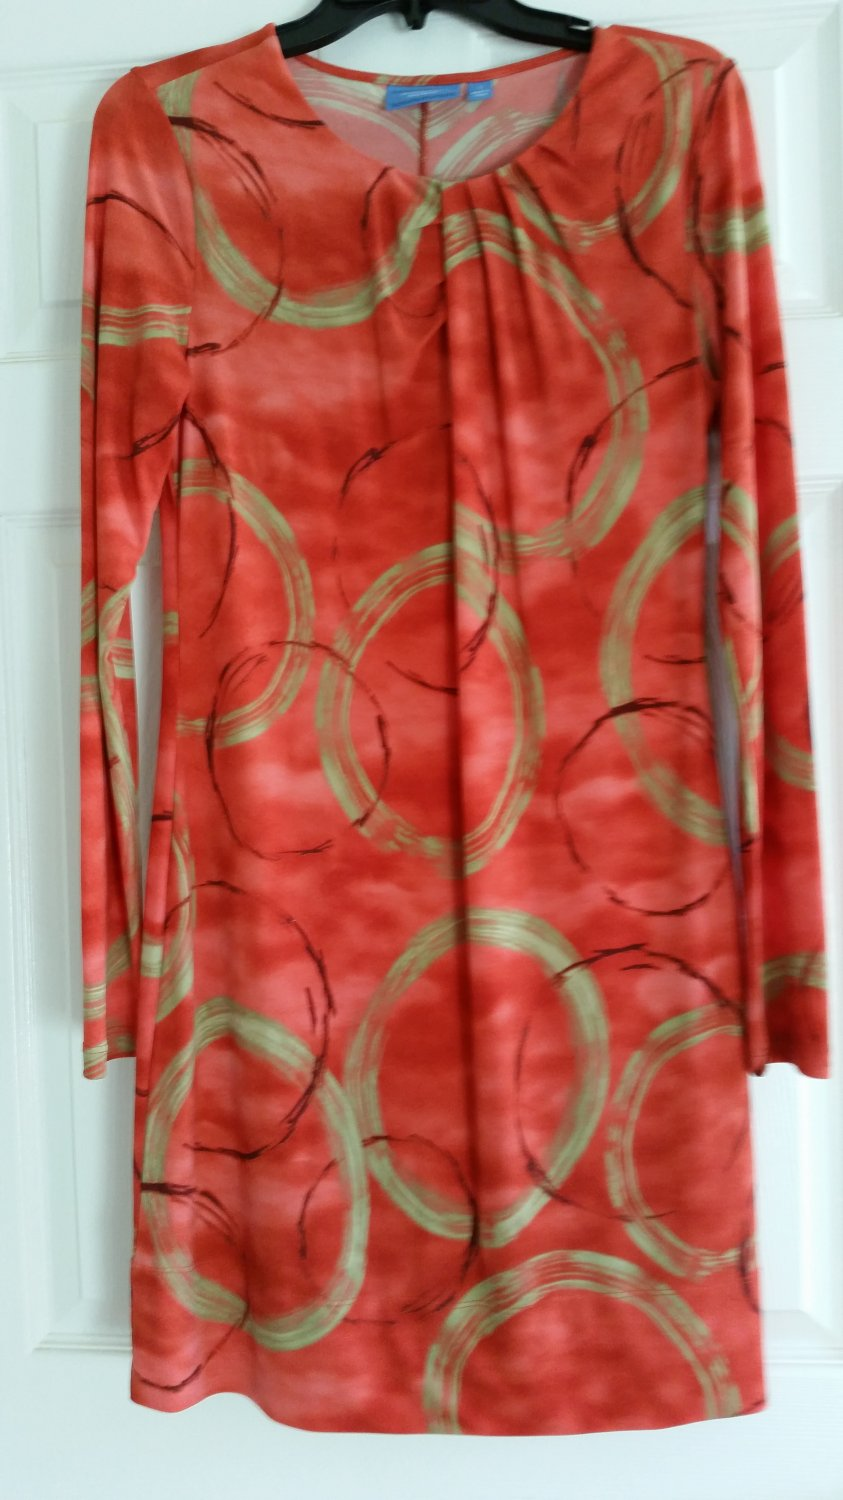 Simply Vera Vera Wang long sleeve dress Size Small.